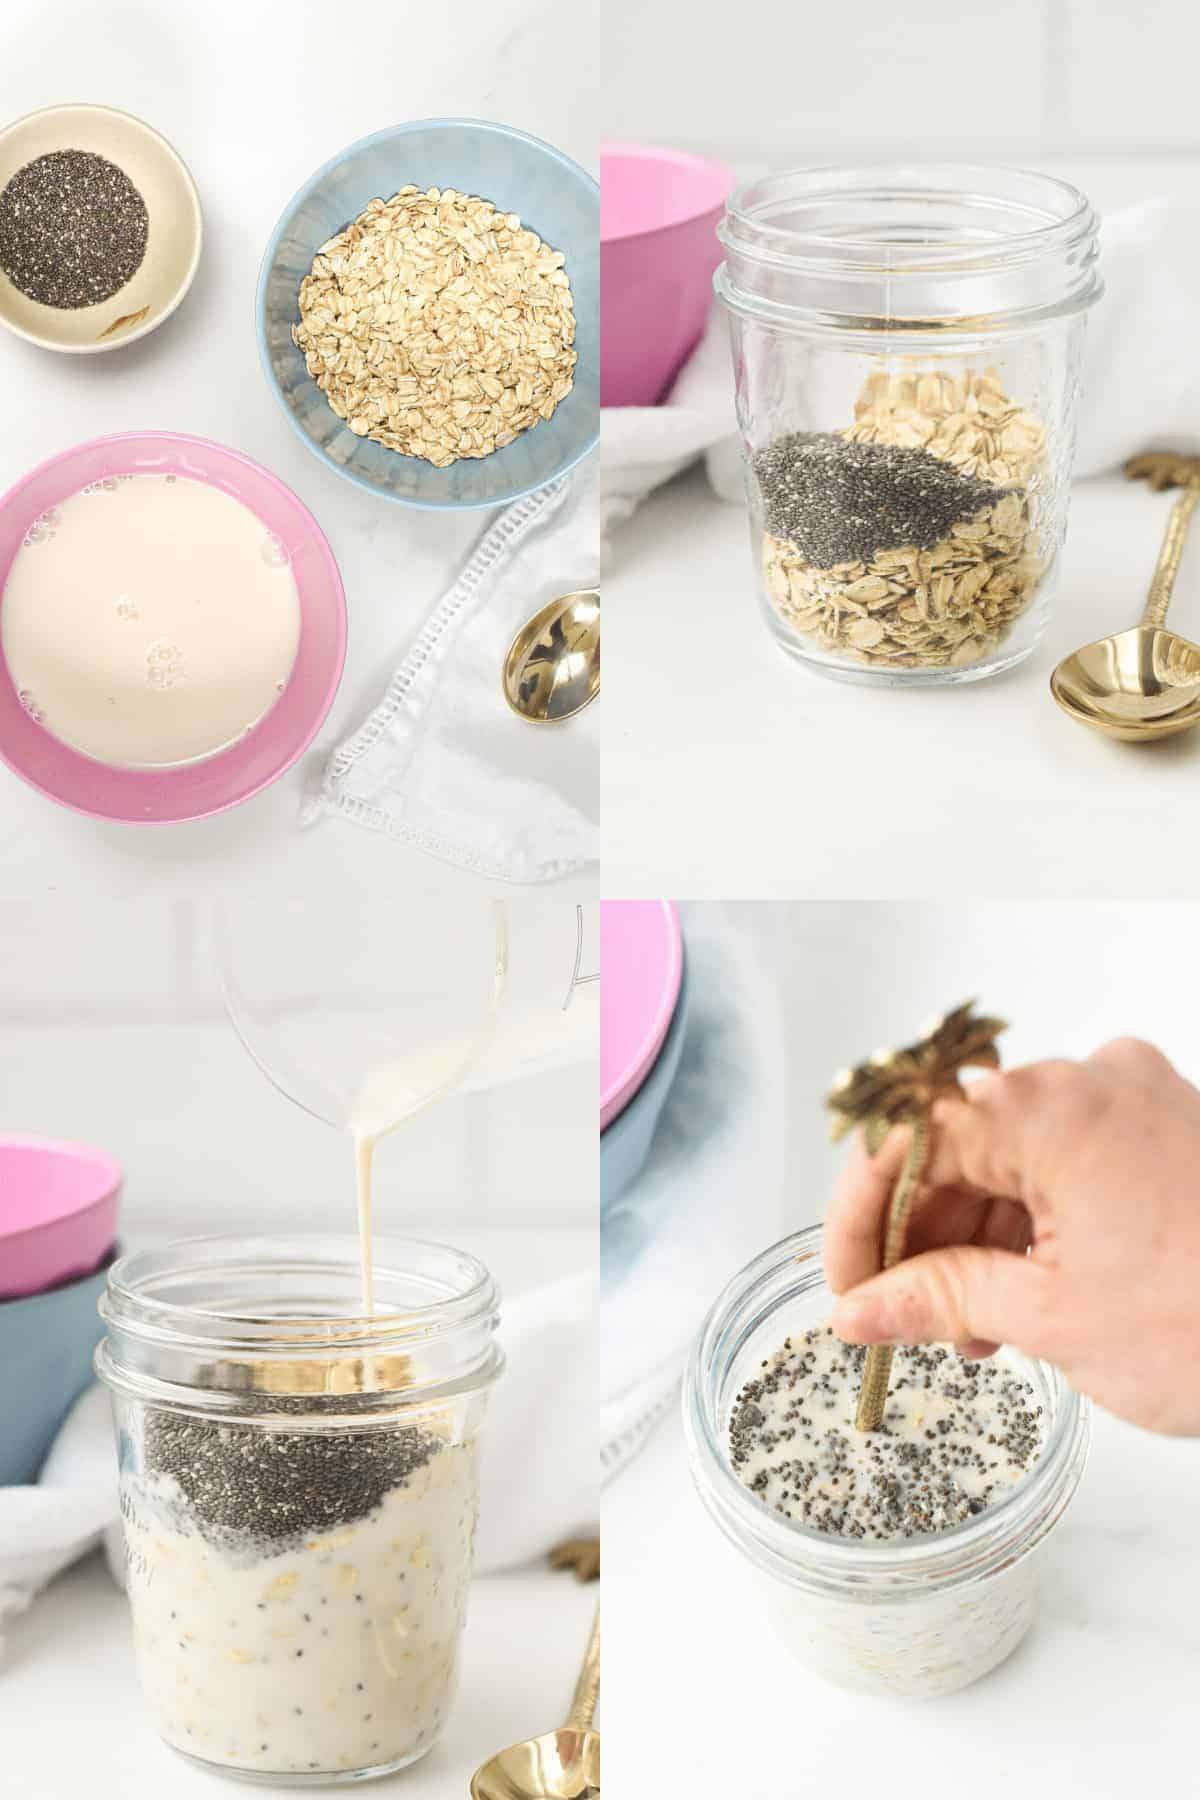 How to make Overnight Oats in a glass mason jarHow to make Overnight Oats in a glass mason jar